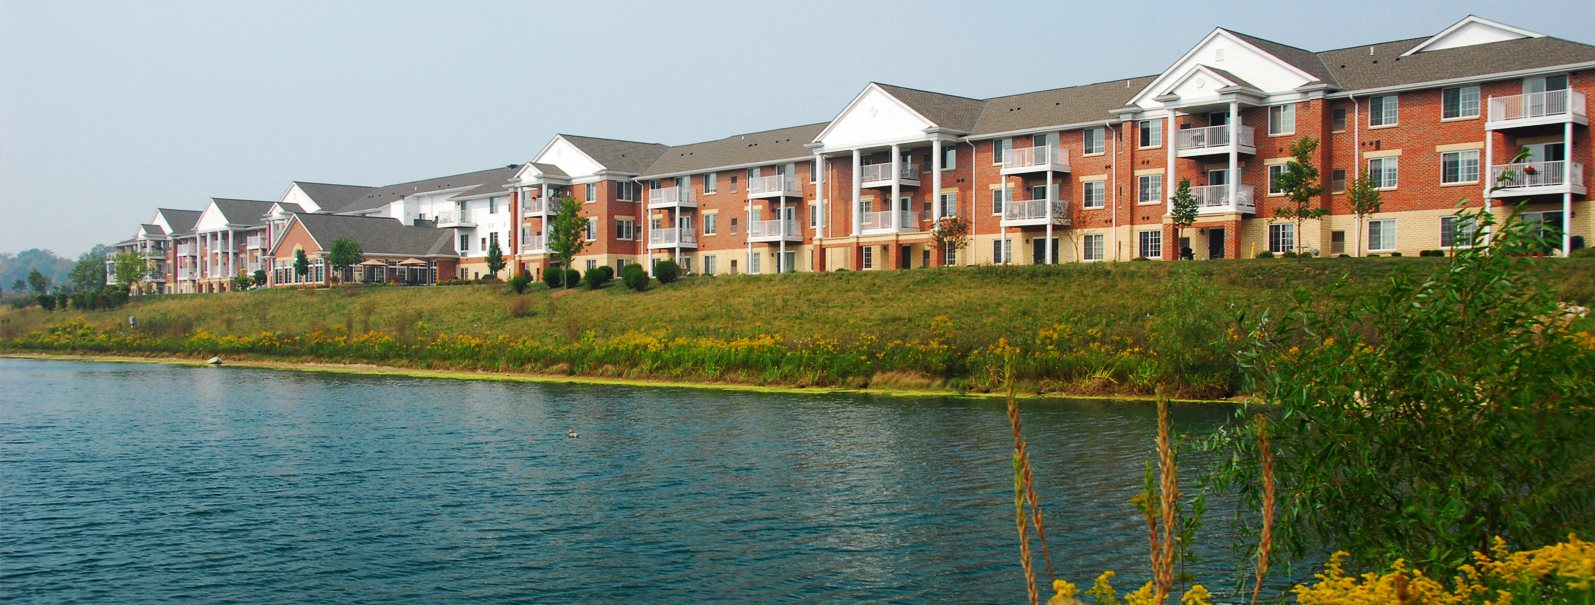 Beautiful Community Beside the Lake at Wildwood Highlands Apartments & Townhomes 55+, Menomonee Falls, WI,53051